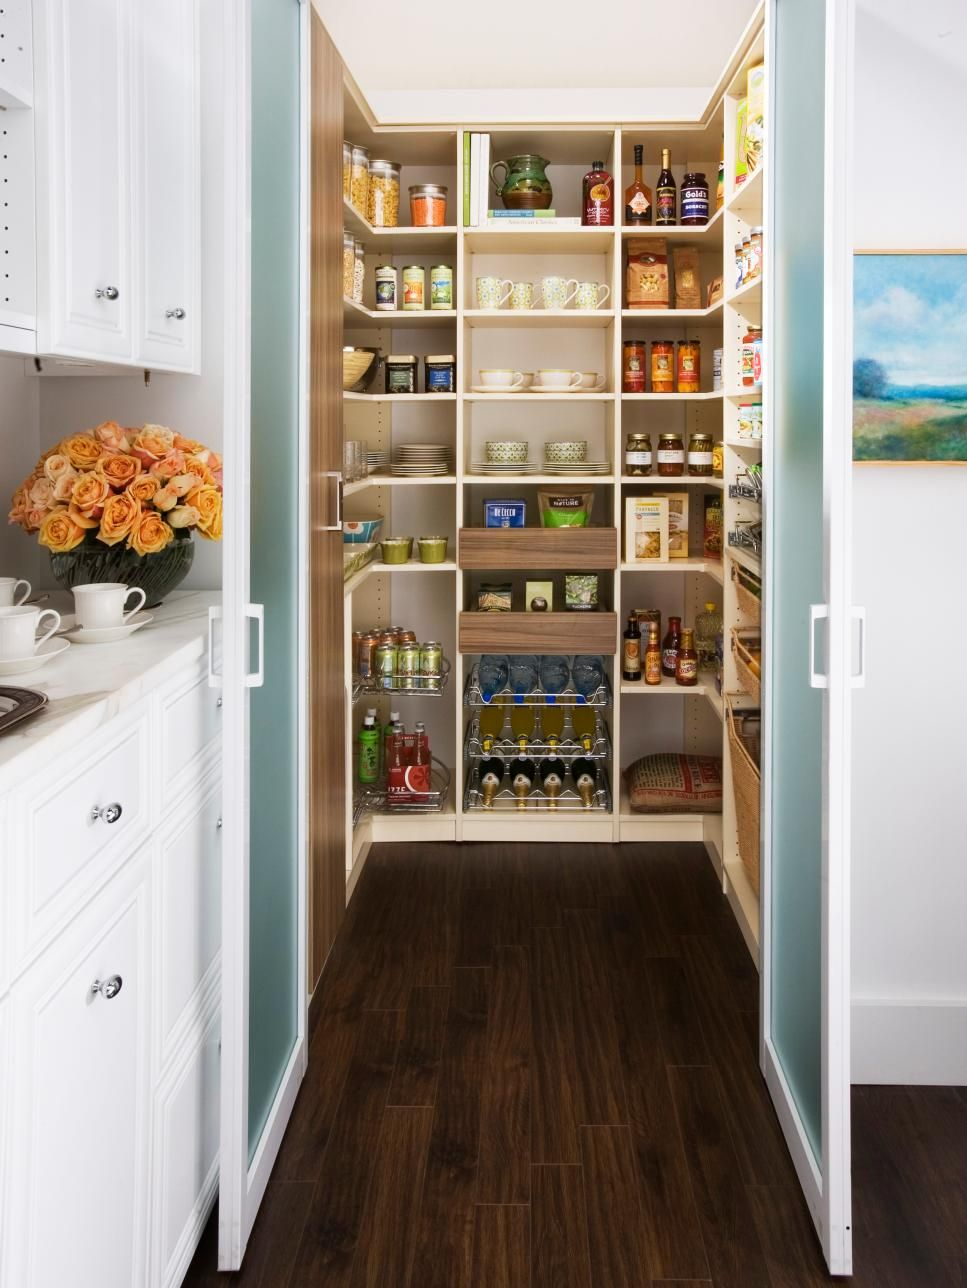 Organization And Design Ideas For Storage In The Kitchen Pantry Pantry Design Kitchen Pantry Design Kitchen Cabinet Storage